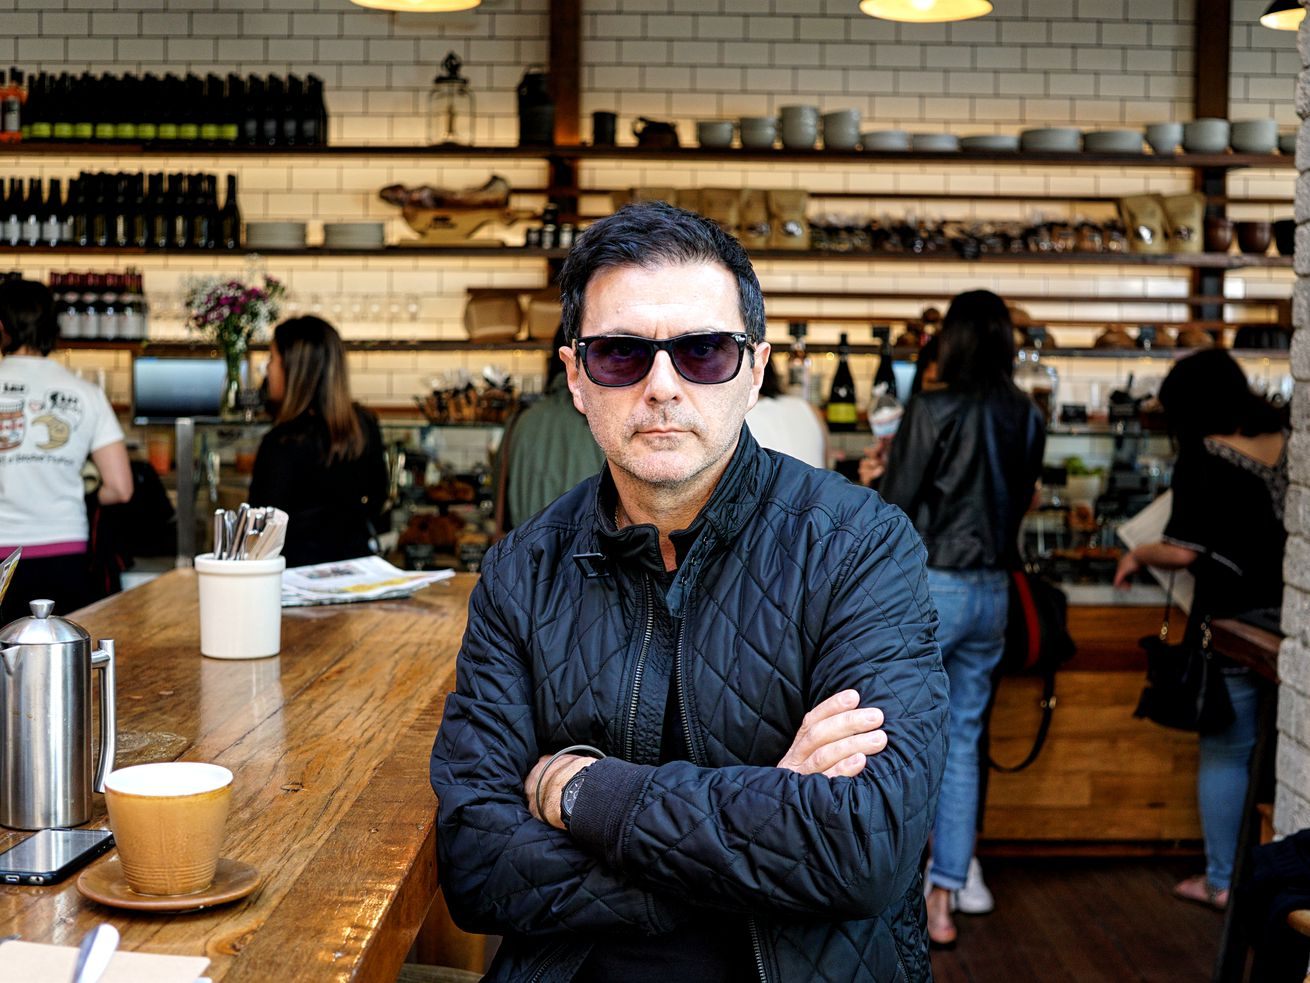 Chef Christophe Eme wearing sunglasses and posing with crossed arms at a restaurant in Los Angeles